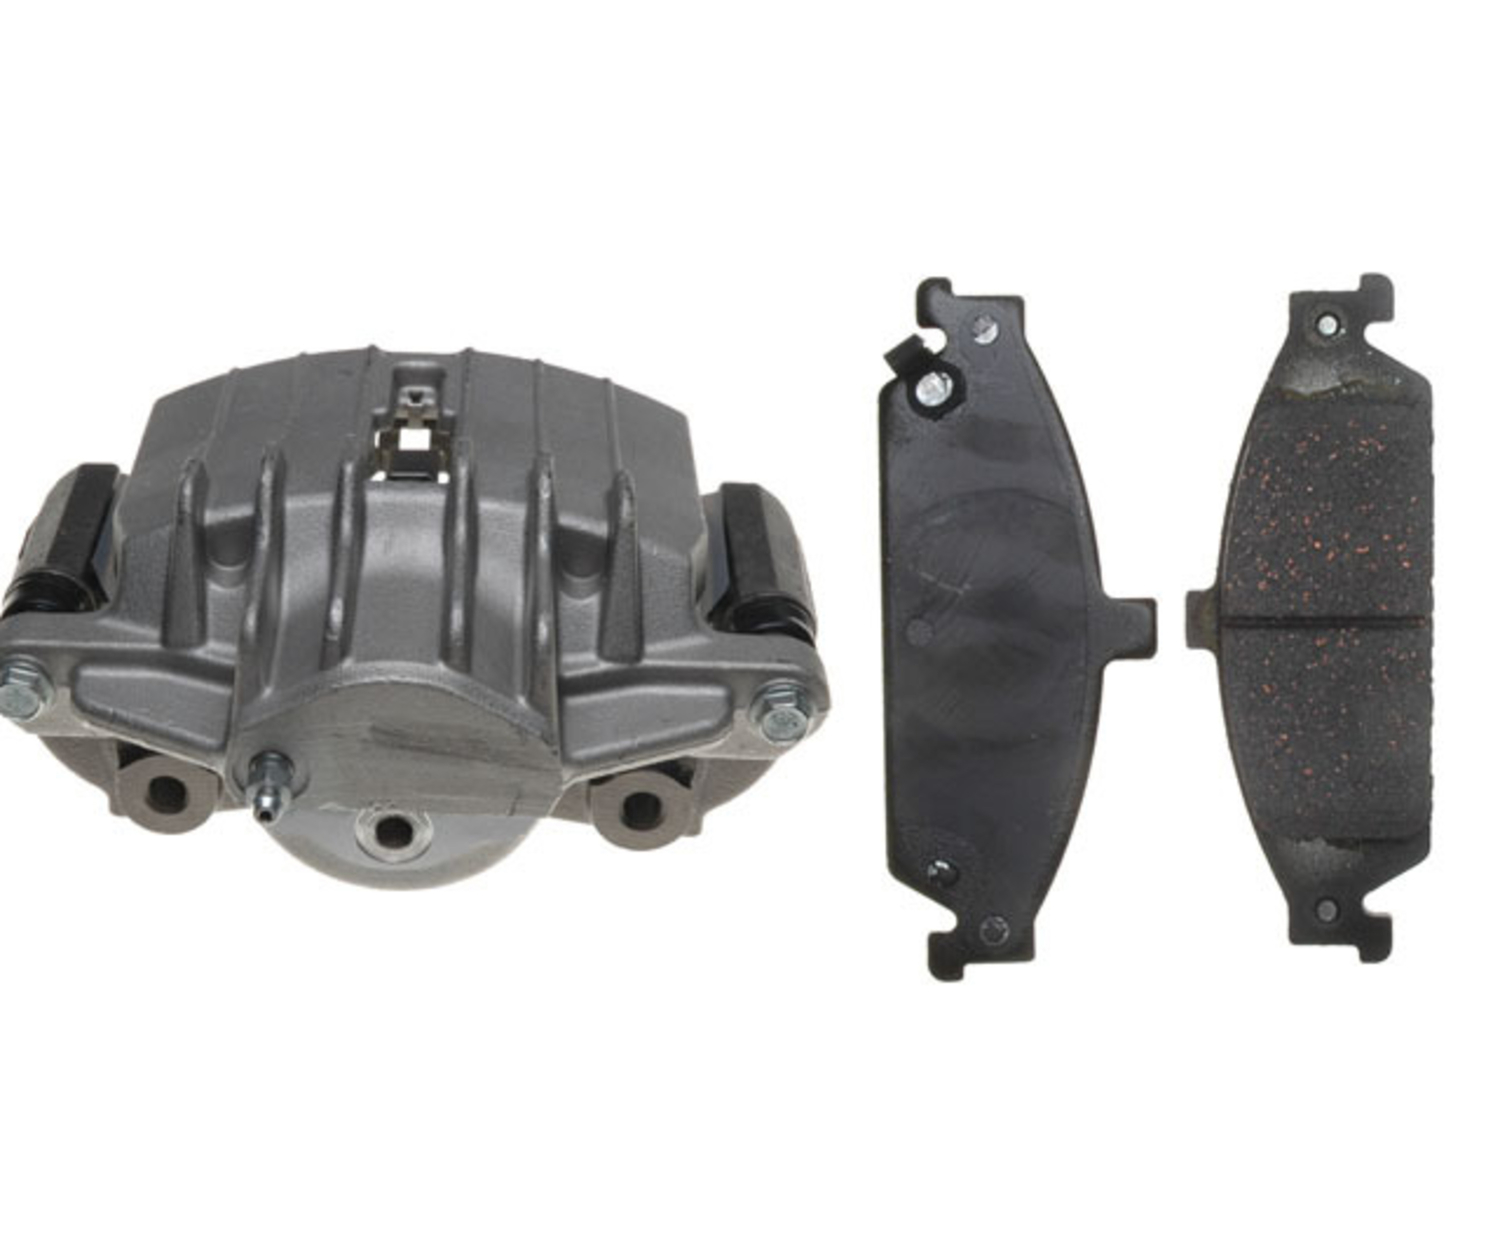 RAYBESTOS - R-Line; Loaded Caliper, Remanufactured; Includes Bracket - RAY RC10905QS